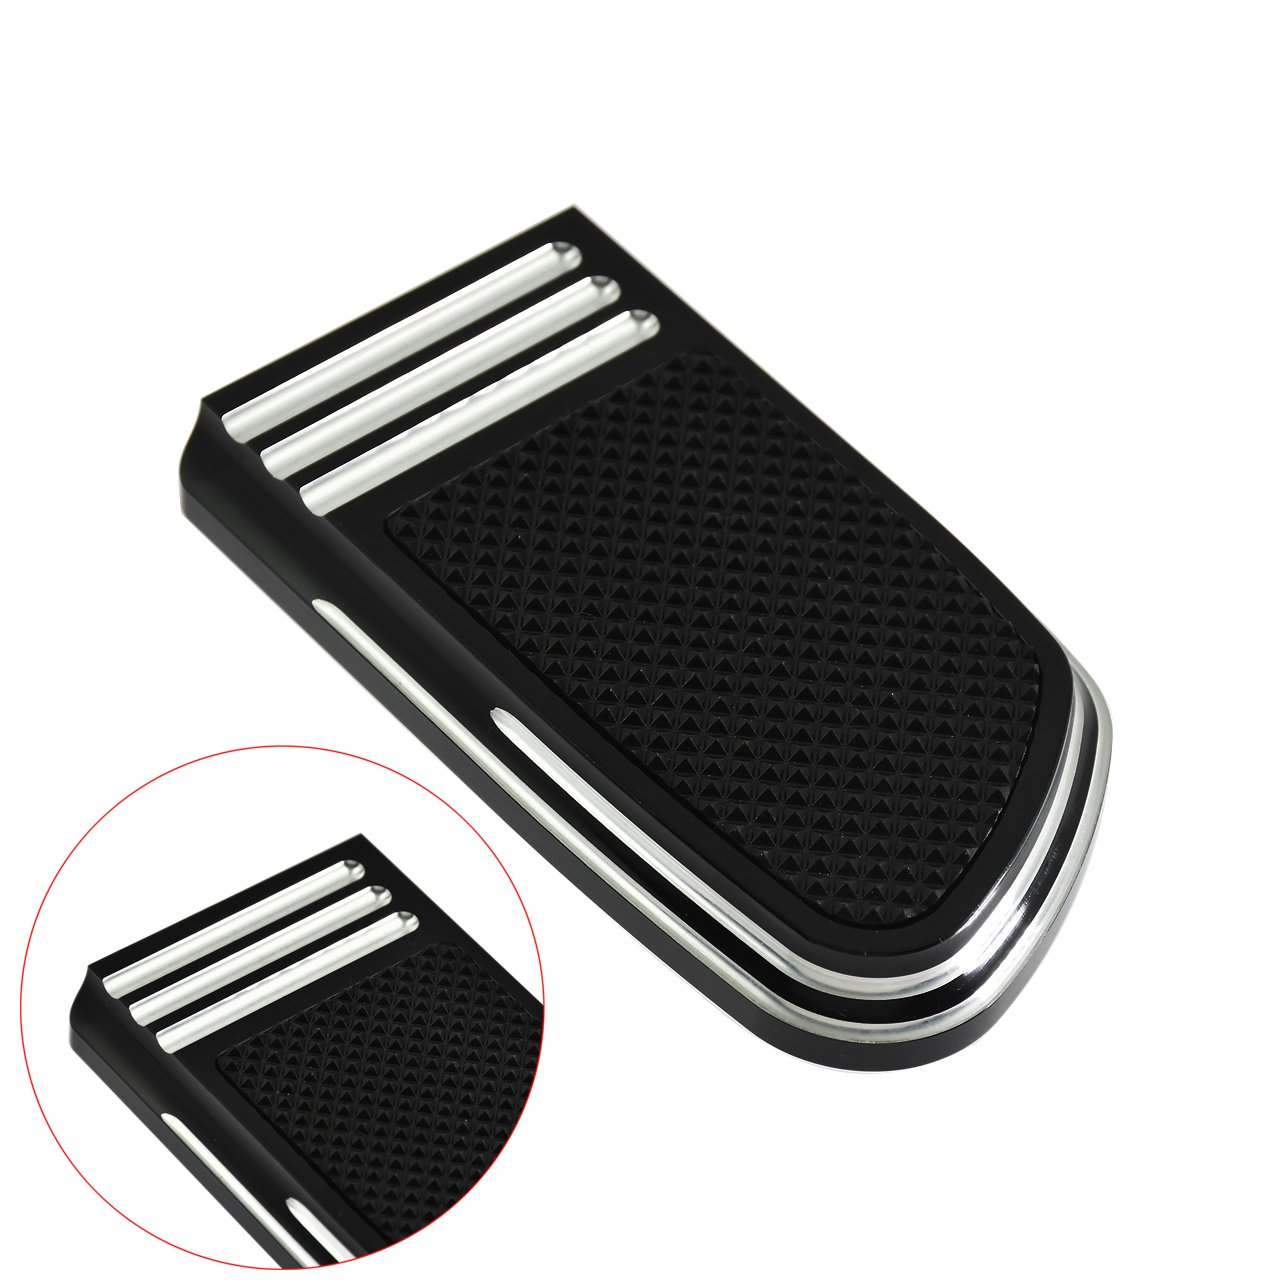 Rebacker Rear Brake Pedal Large Pad Cover for Harley Dyna Street Fat Bob Wide Glide Softail